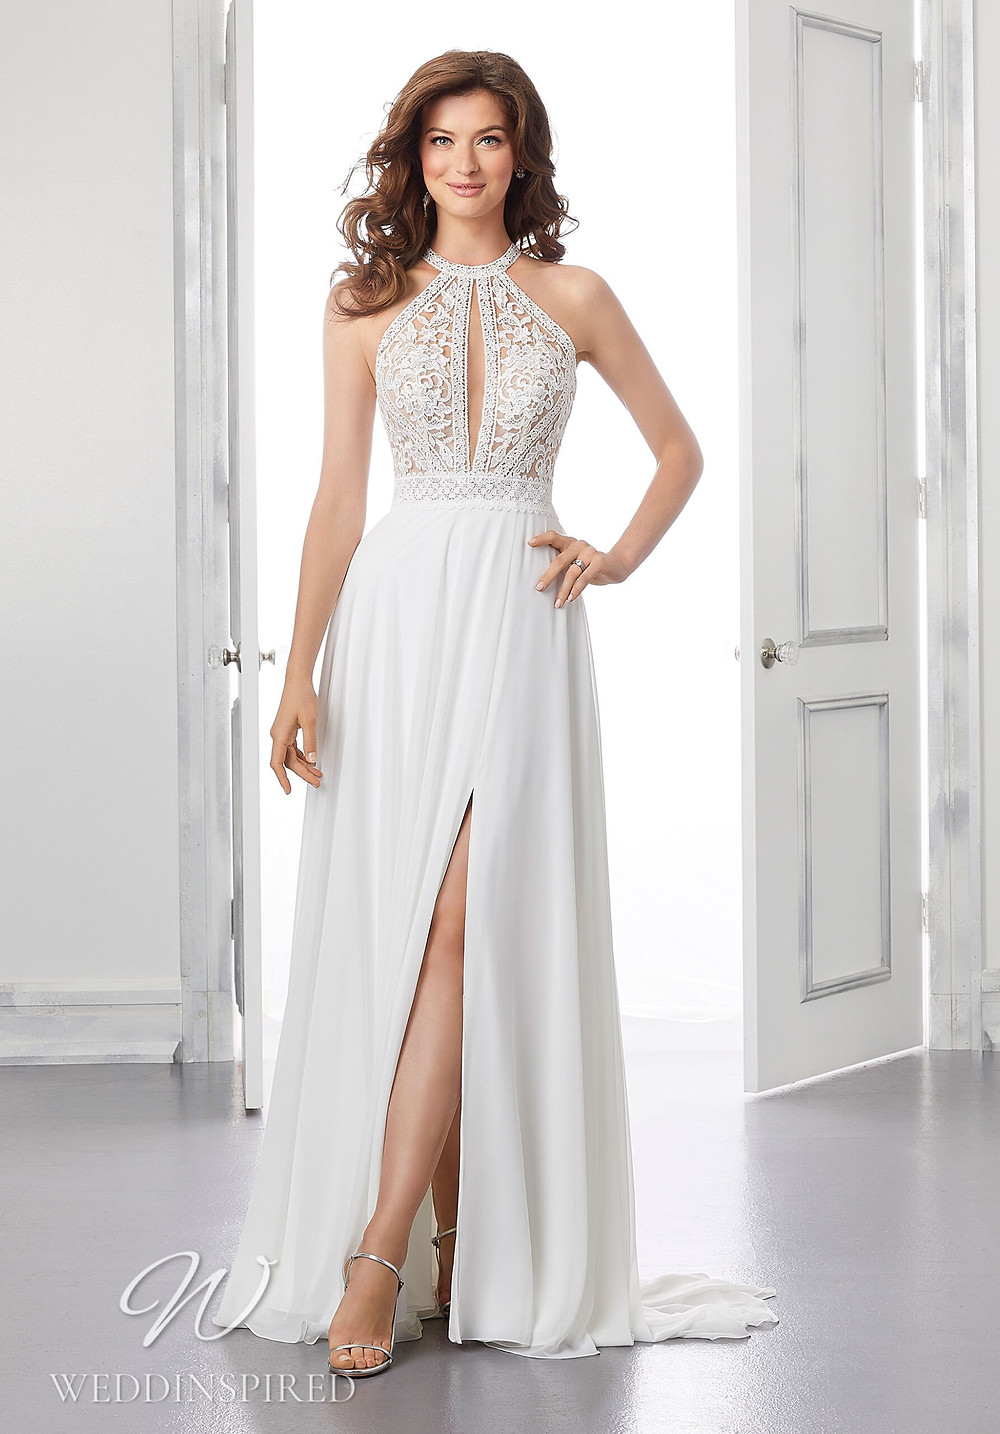 A Madeline Gardner lace and chiffon halterneck A-line wedding dress